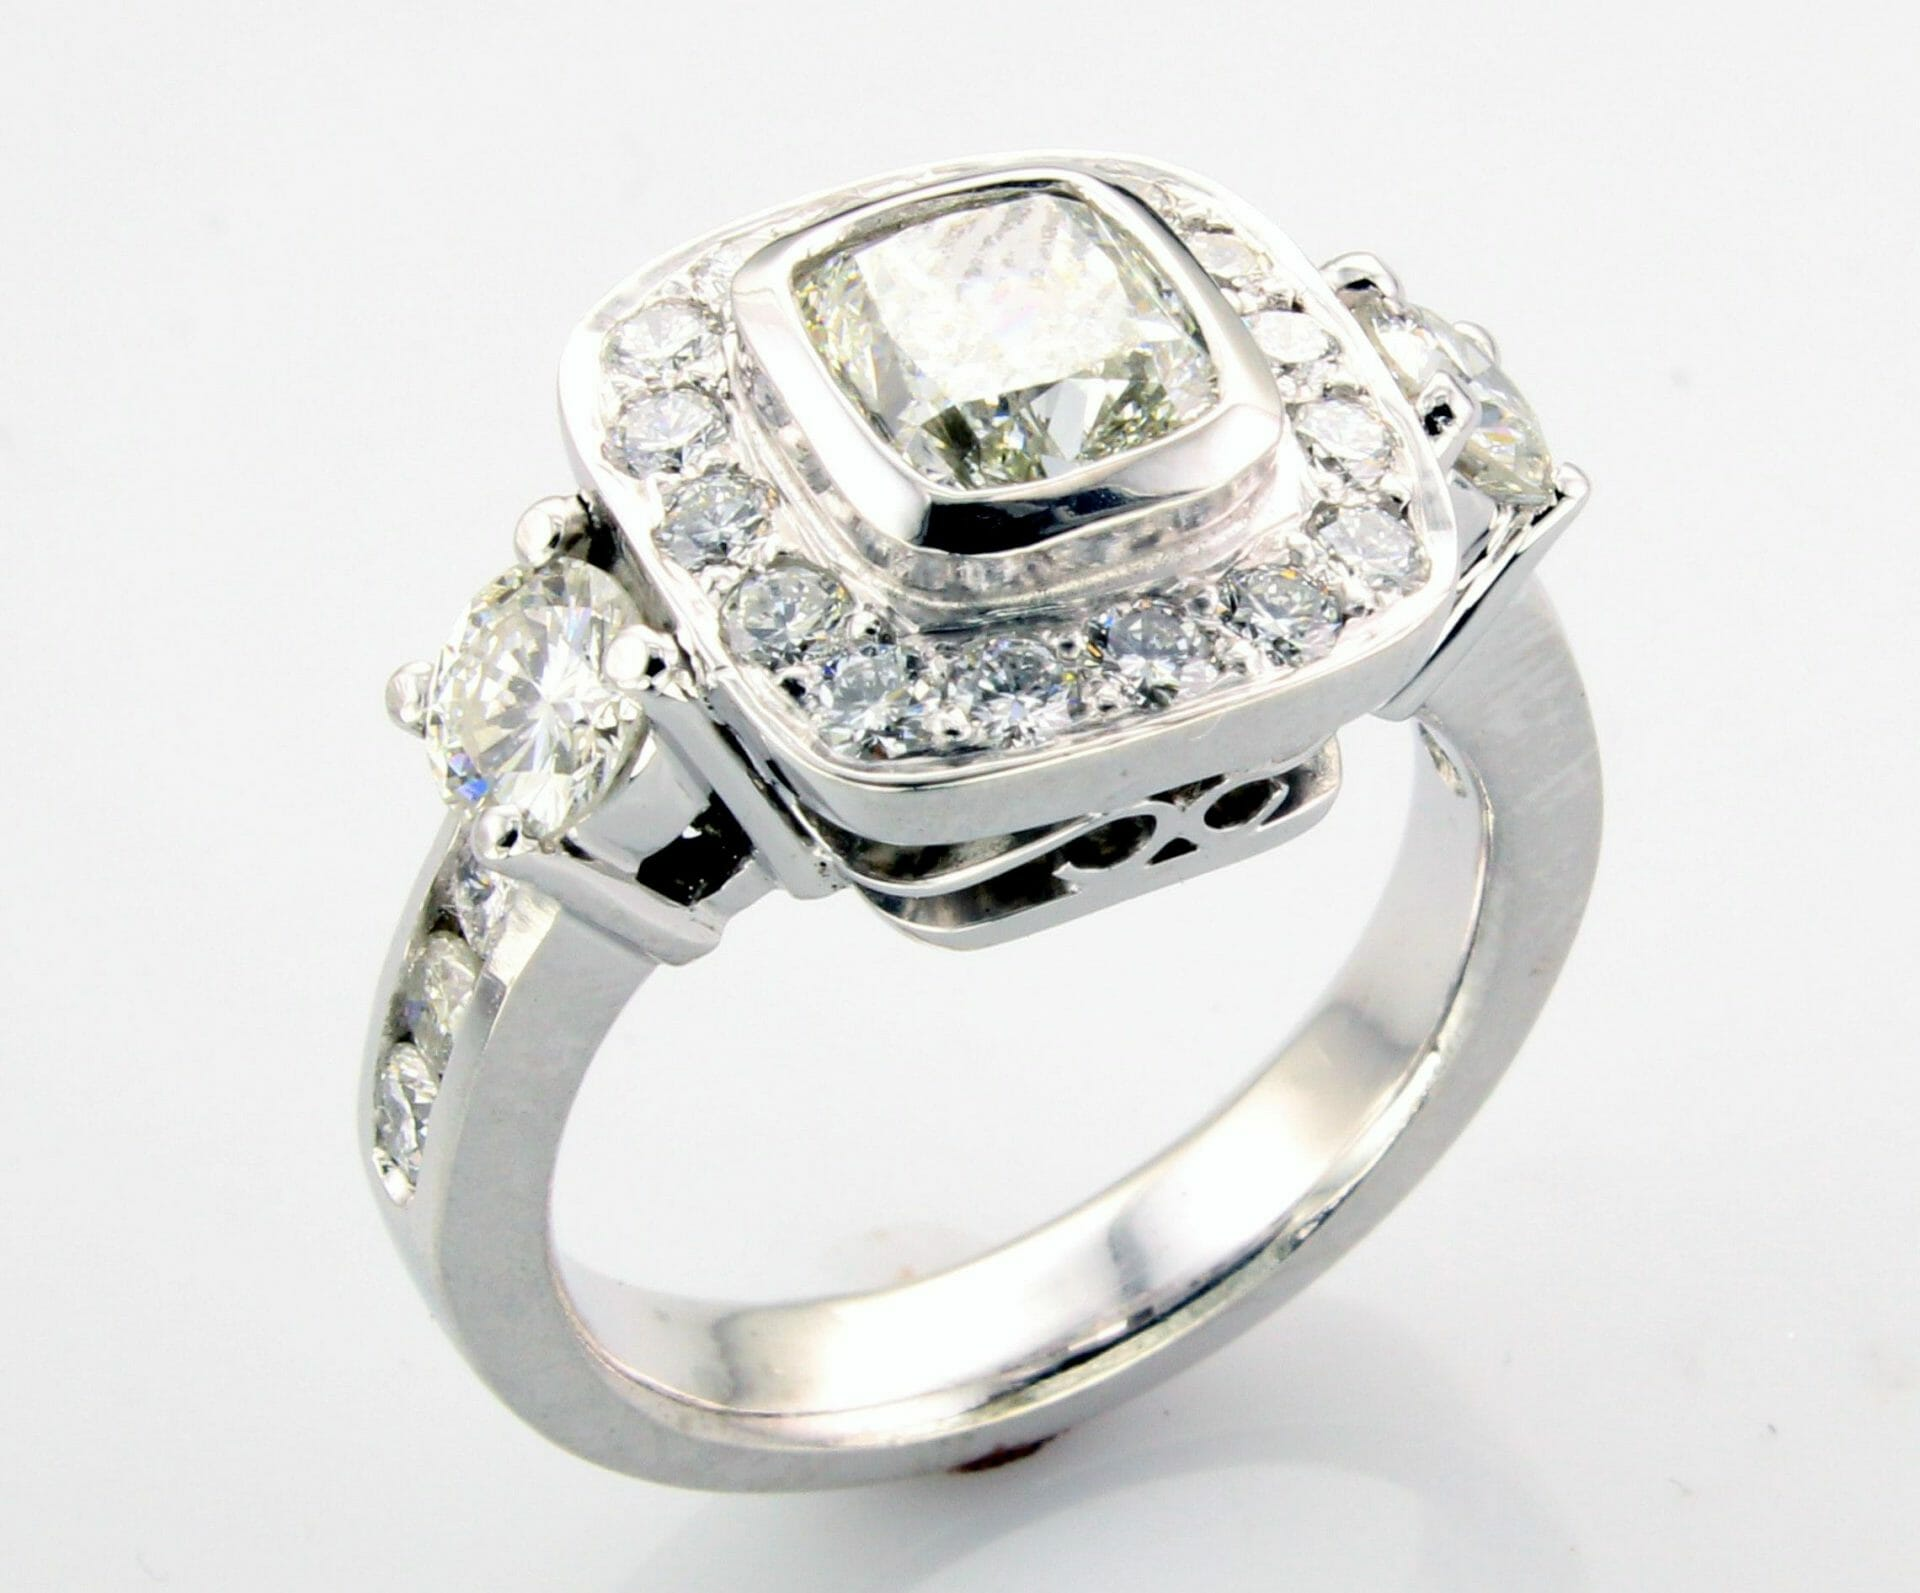 Halo Diamond Engagement Ring with side diamonds